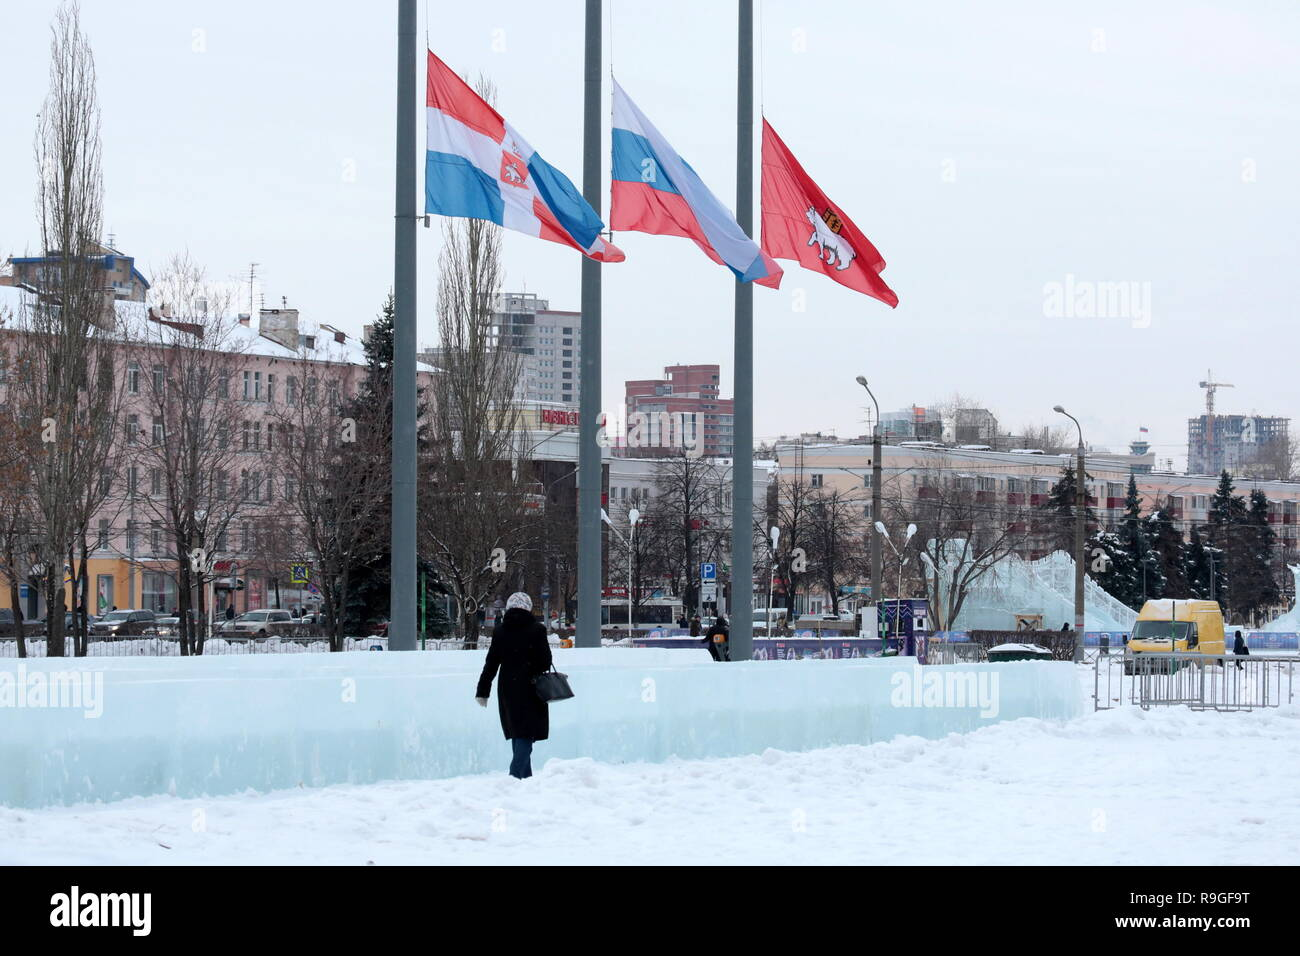 PERM, RUSSIA - DECEMBER 24, 2018: The flag of Perm Territory